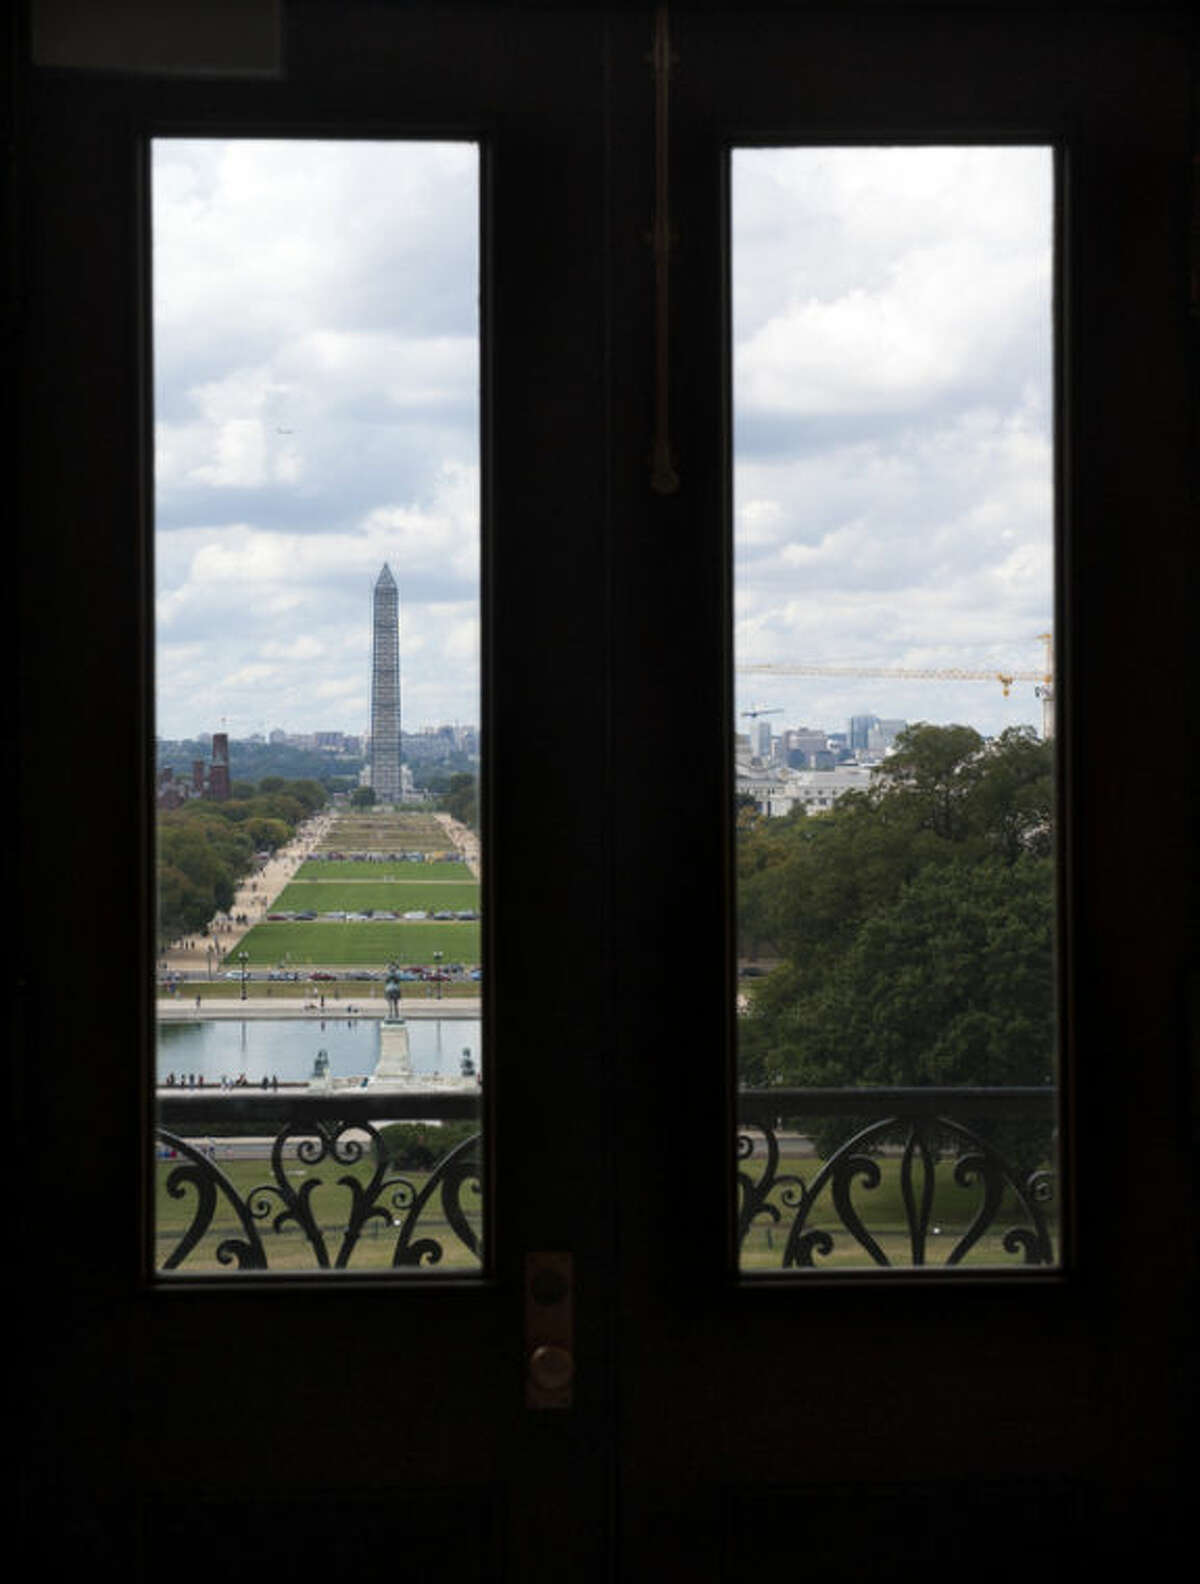 The Washington Monument is seen through windows in a door in the U.S. Capitol Sunday morning, Sept. 29, 2013, as the United States braces for a partial government shutdown Tuesday after the White House and congressional Democrats declared they would reject a bill approved by the Republican-led House to delay implementing President Barack Obama's health care reform.(AP Photo/Cliff Owen)